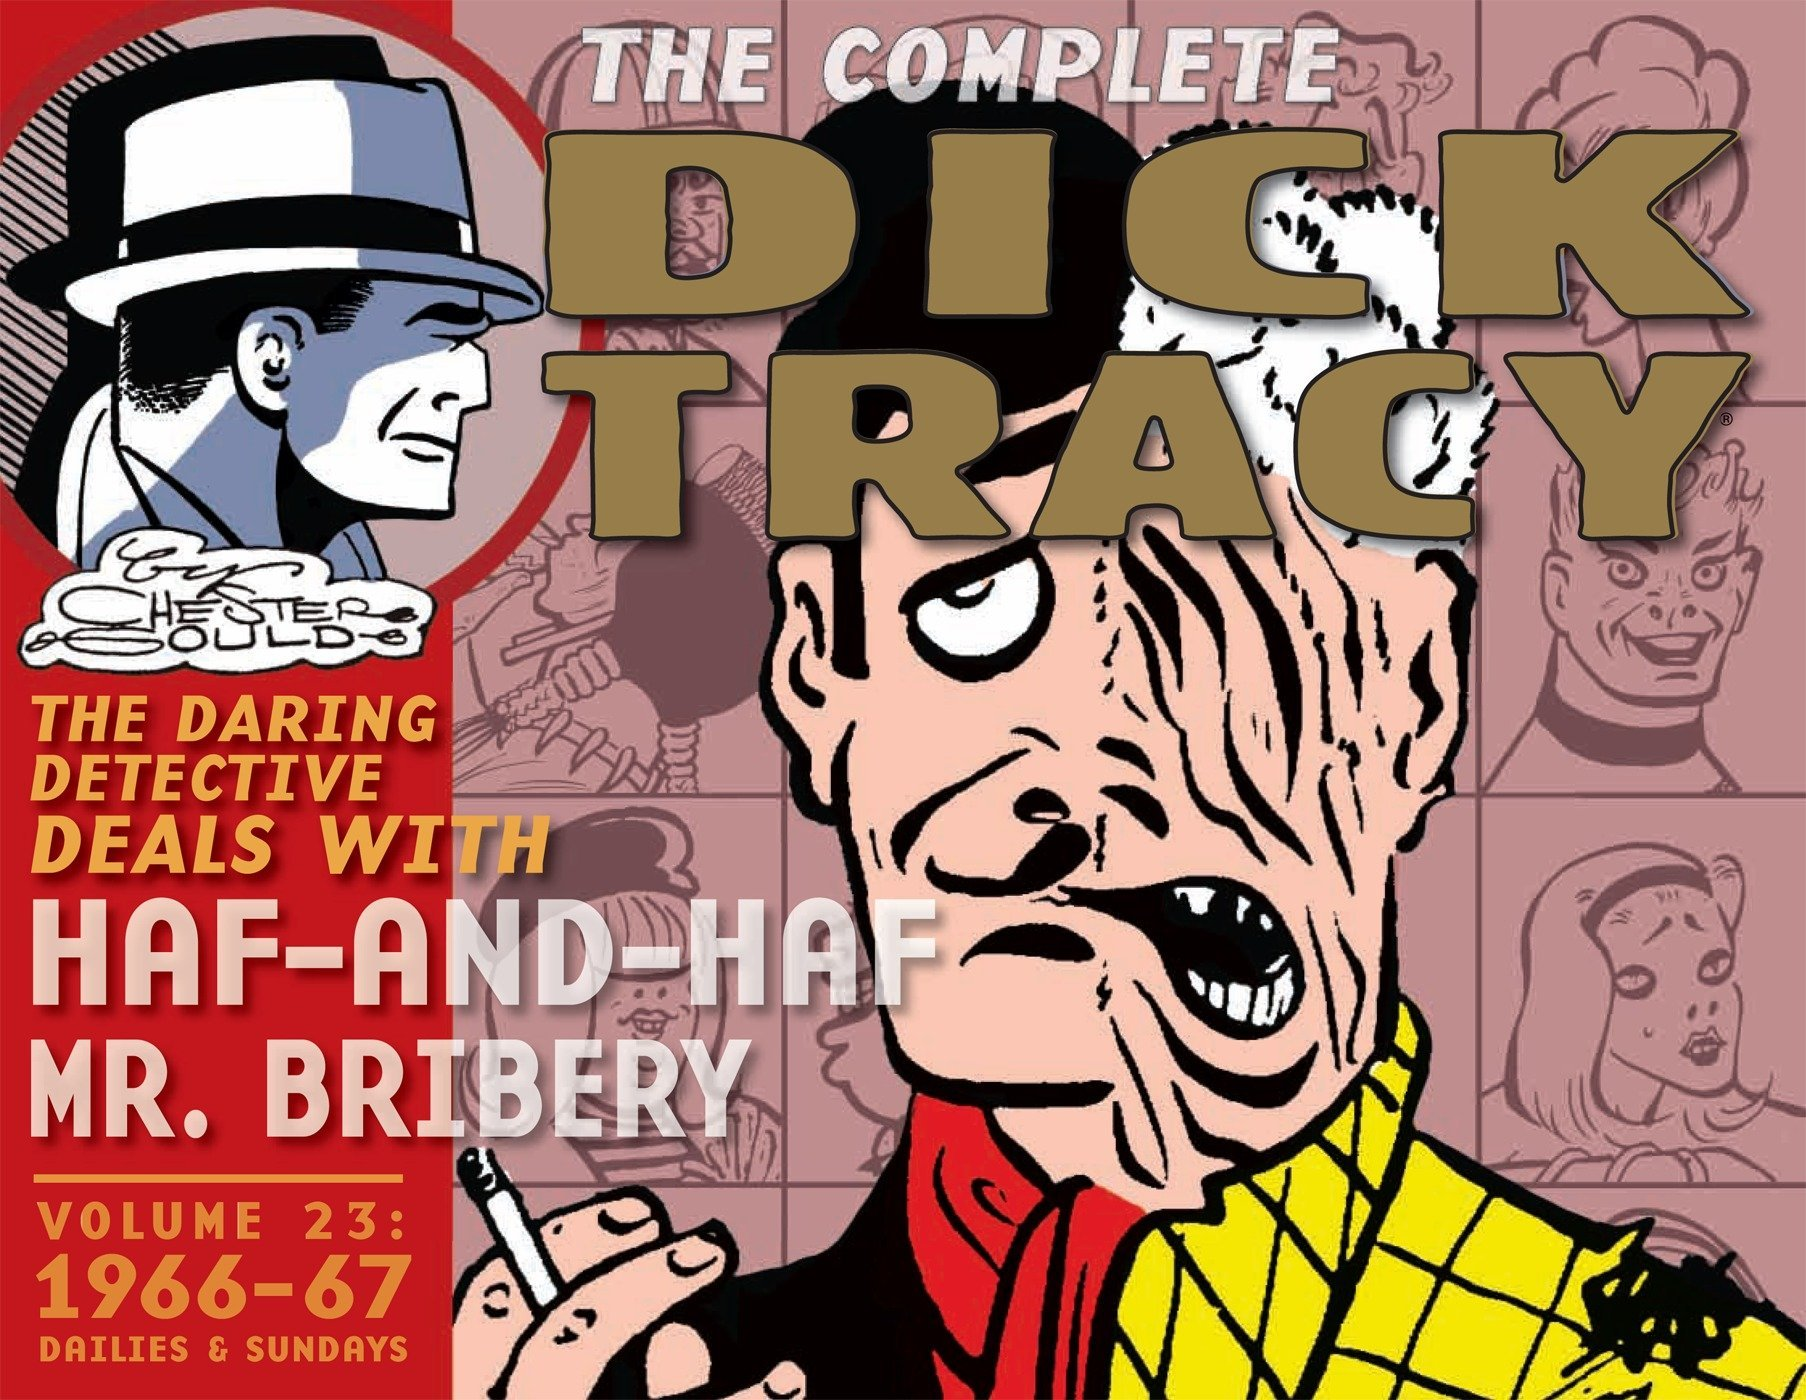 Moon space craft of dick tracy